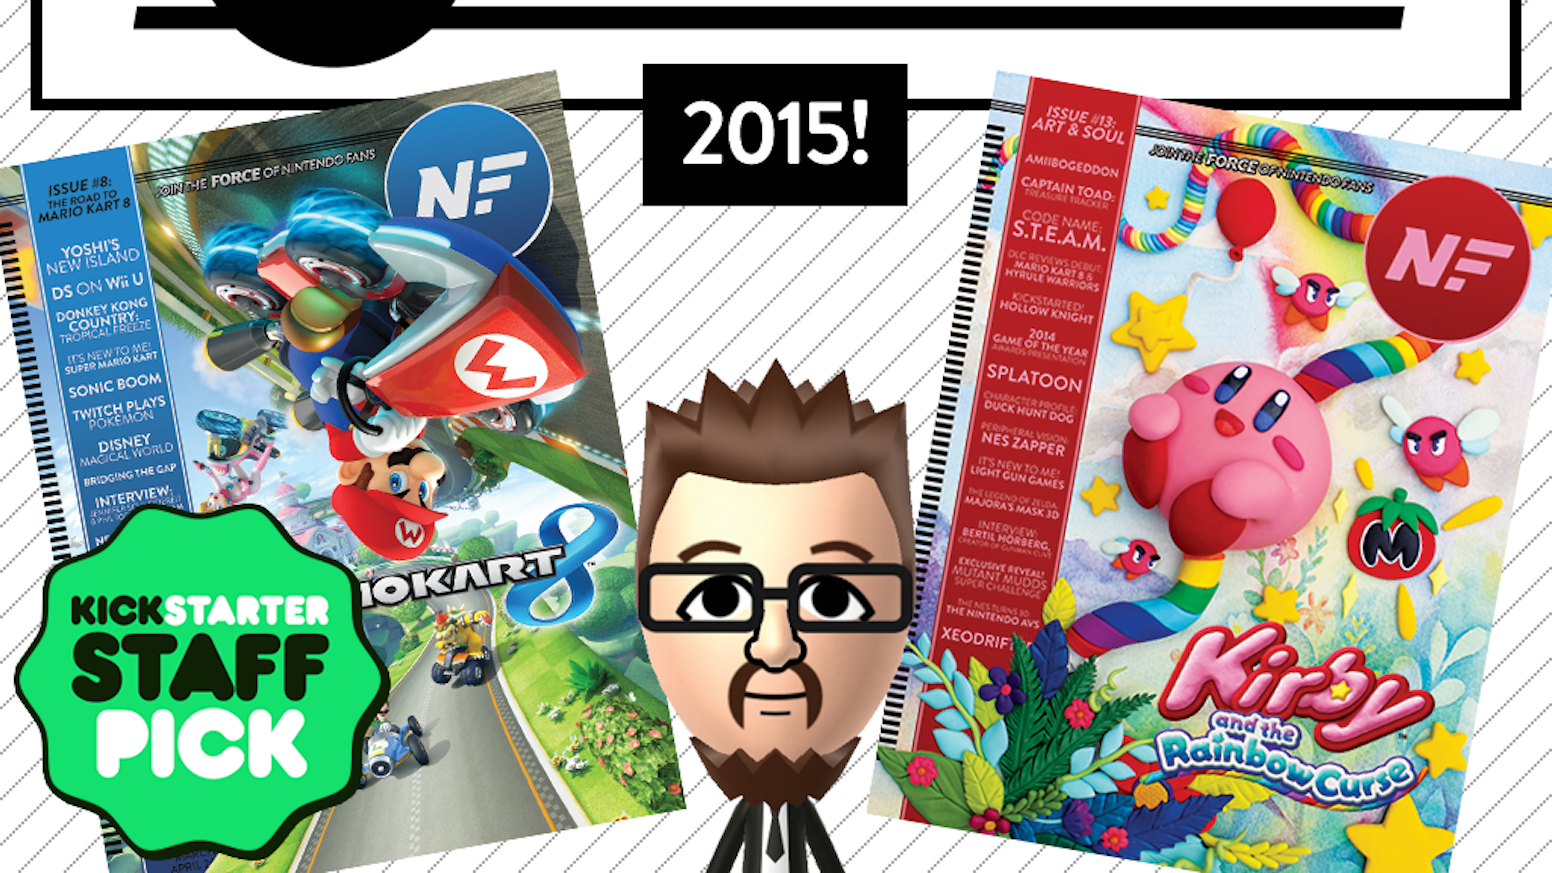 The Nintendo Force is back for 2015! If you missed this campaign, you can still subscribe by clicking right here: